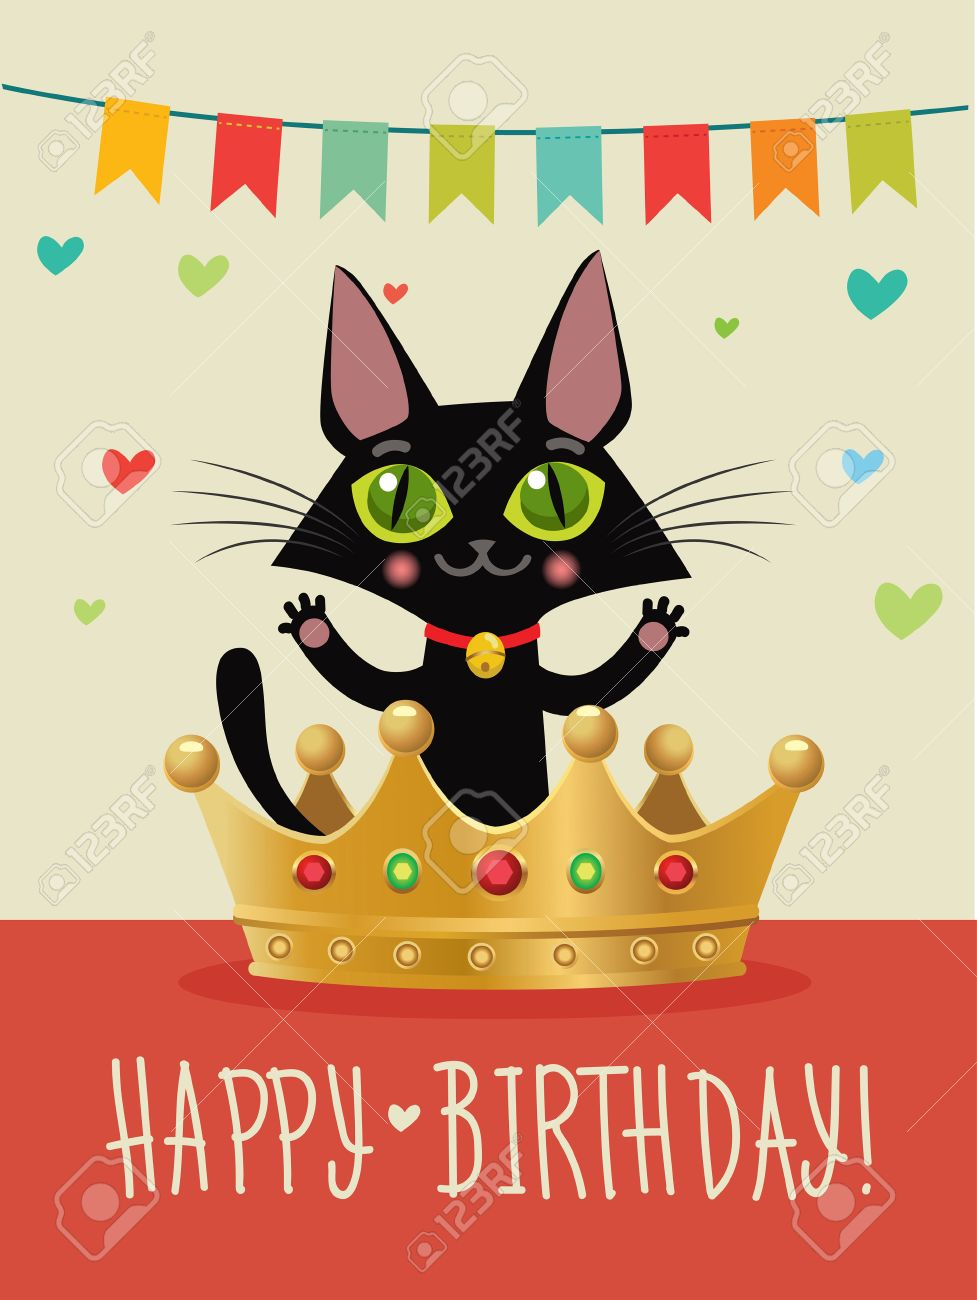 Happy Birthday To You Card With Funny Black Cat And Gold Crown Wish Humor Greeting Image In The